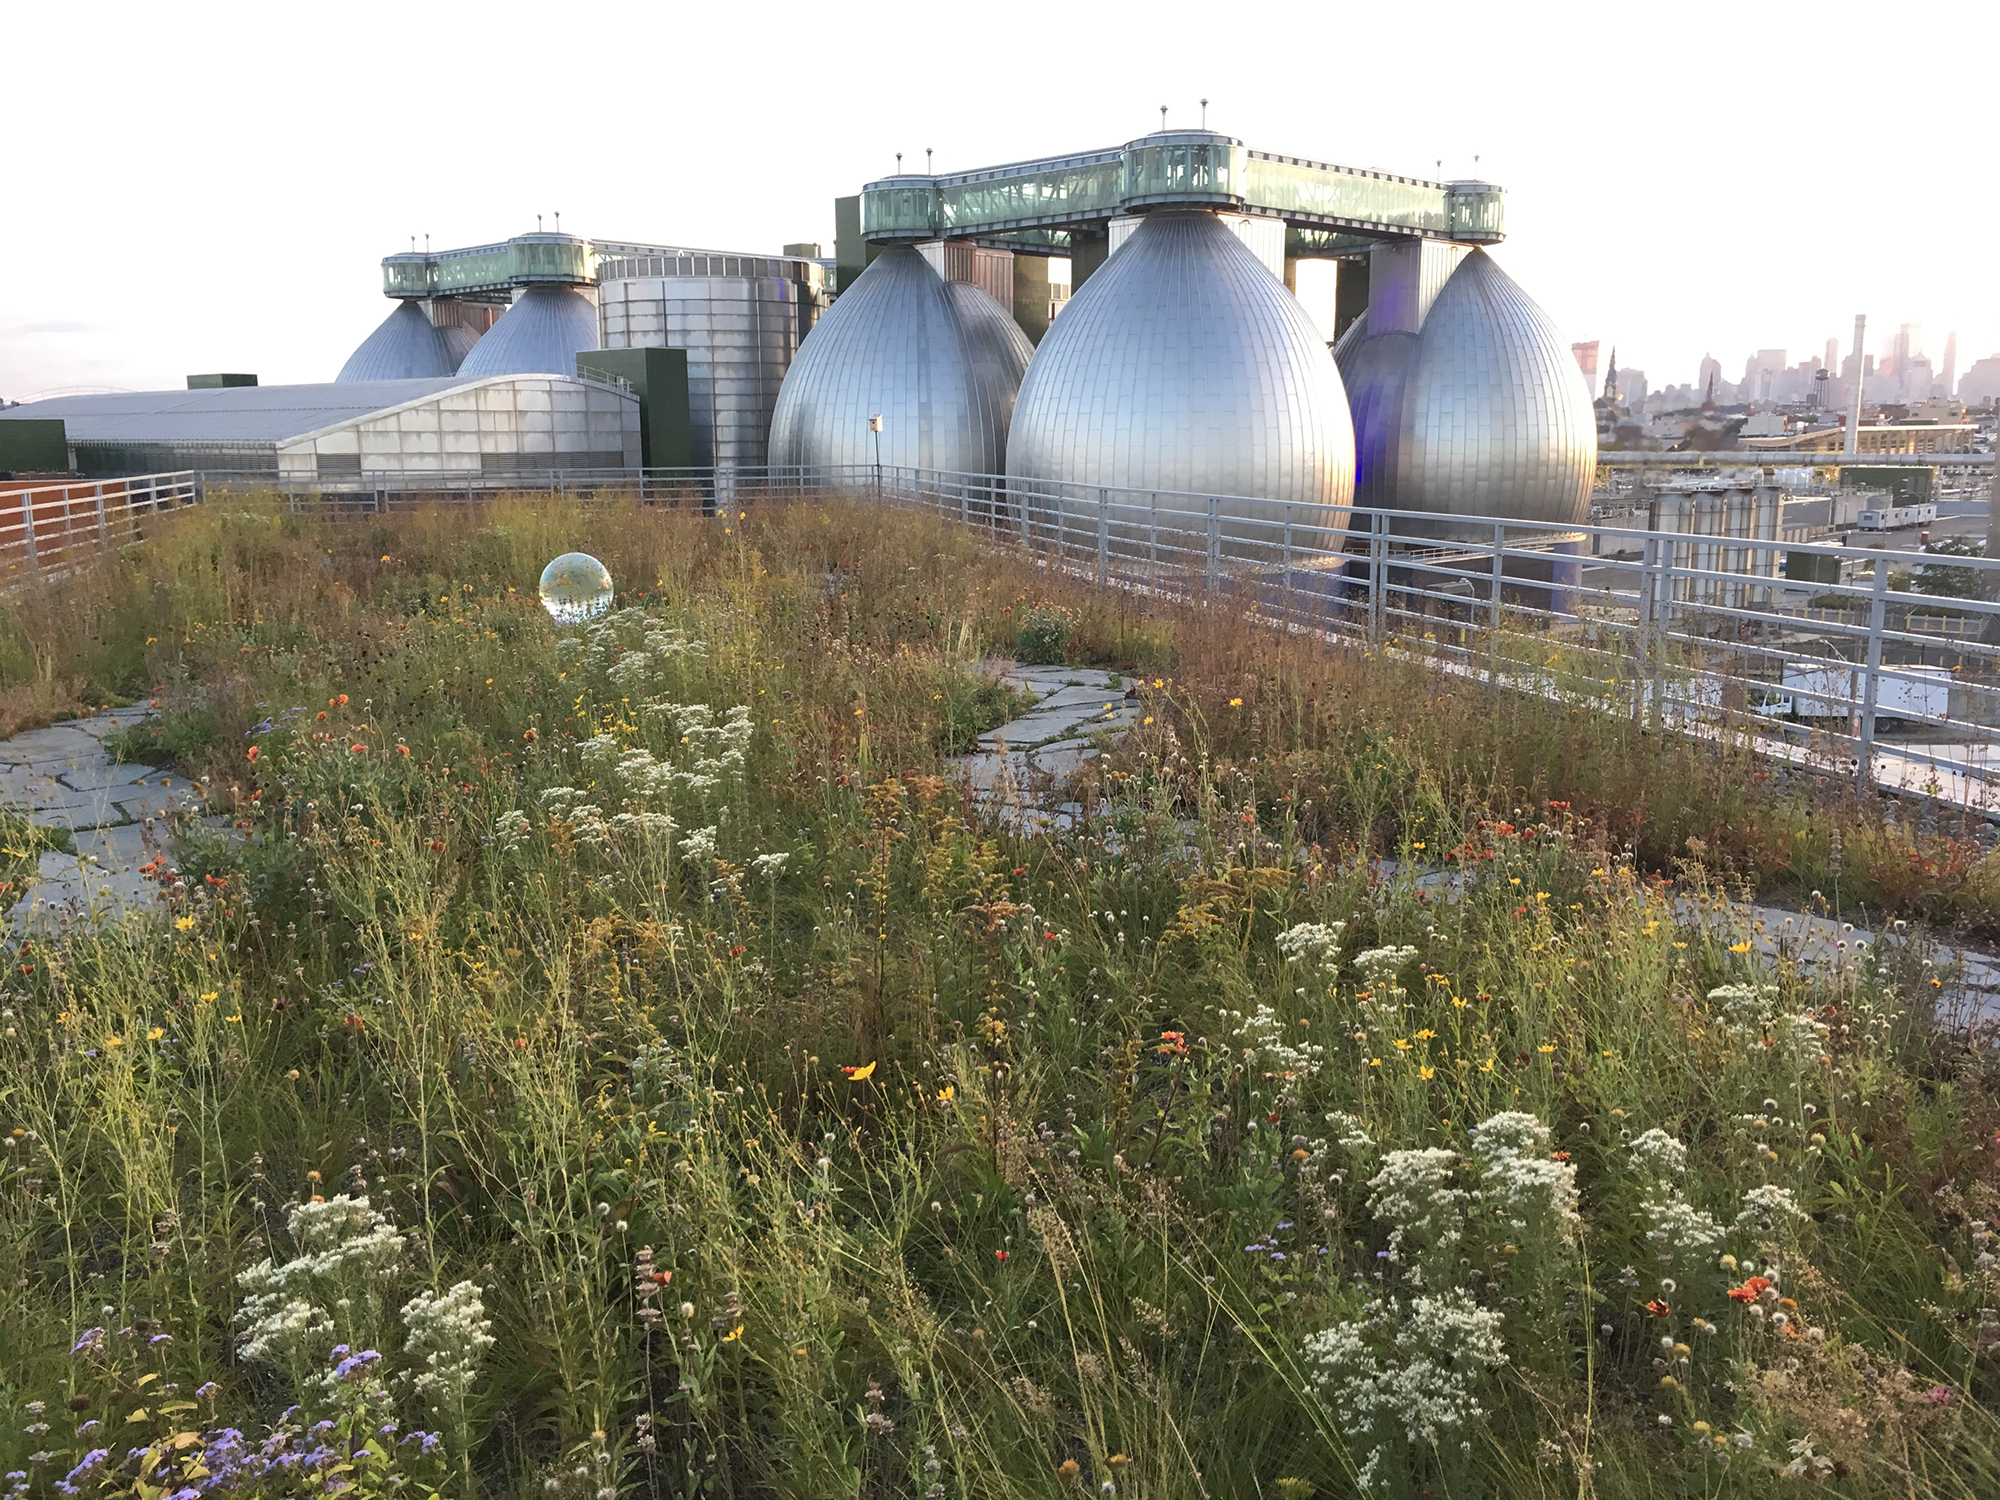 A green roof atop a warehouse centre in Greenpoint, the Kingsland Wildflowers project serves wildlife and people in creating an open green space, funded by the Greenpoint Community Environmental Fund. Photo: Johanna Jelinek Boman.